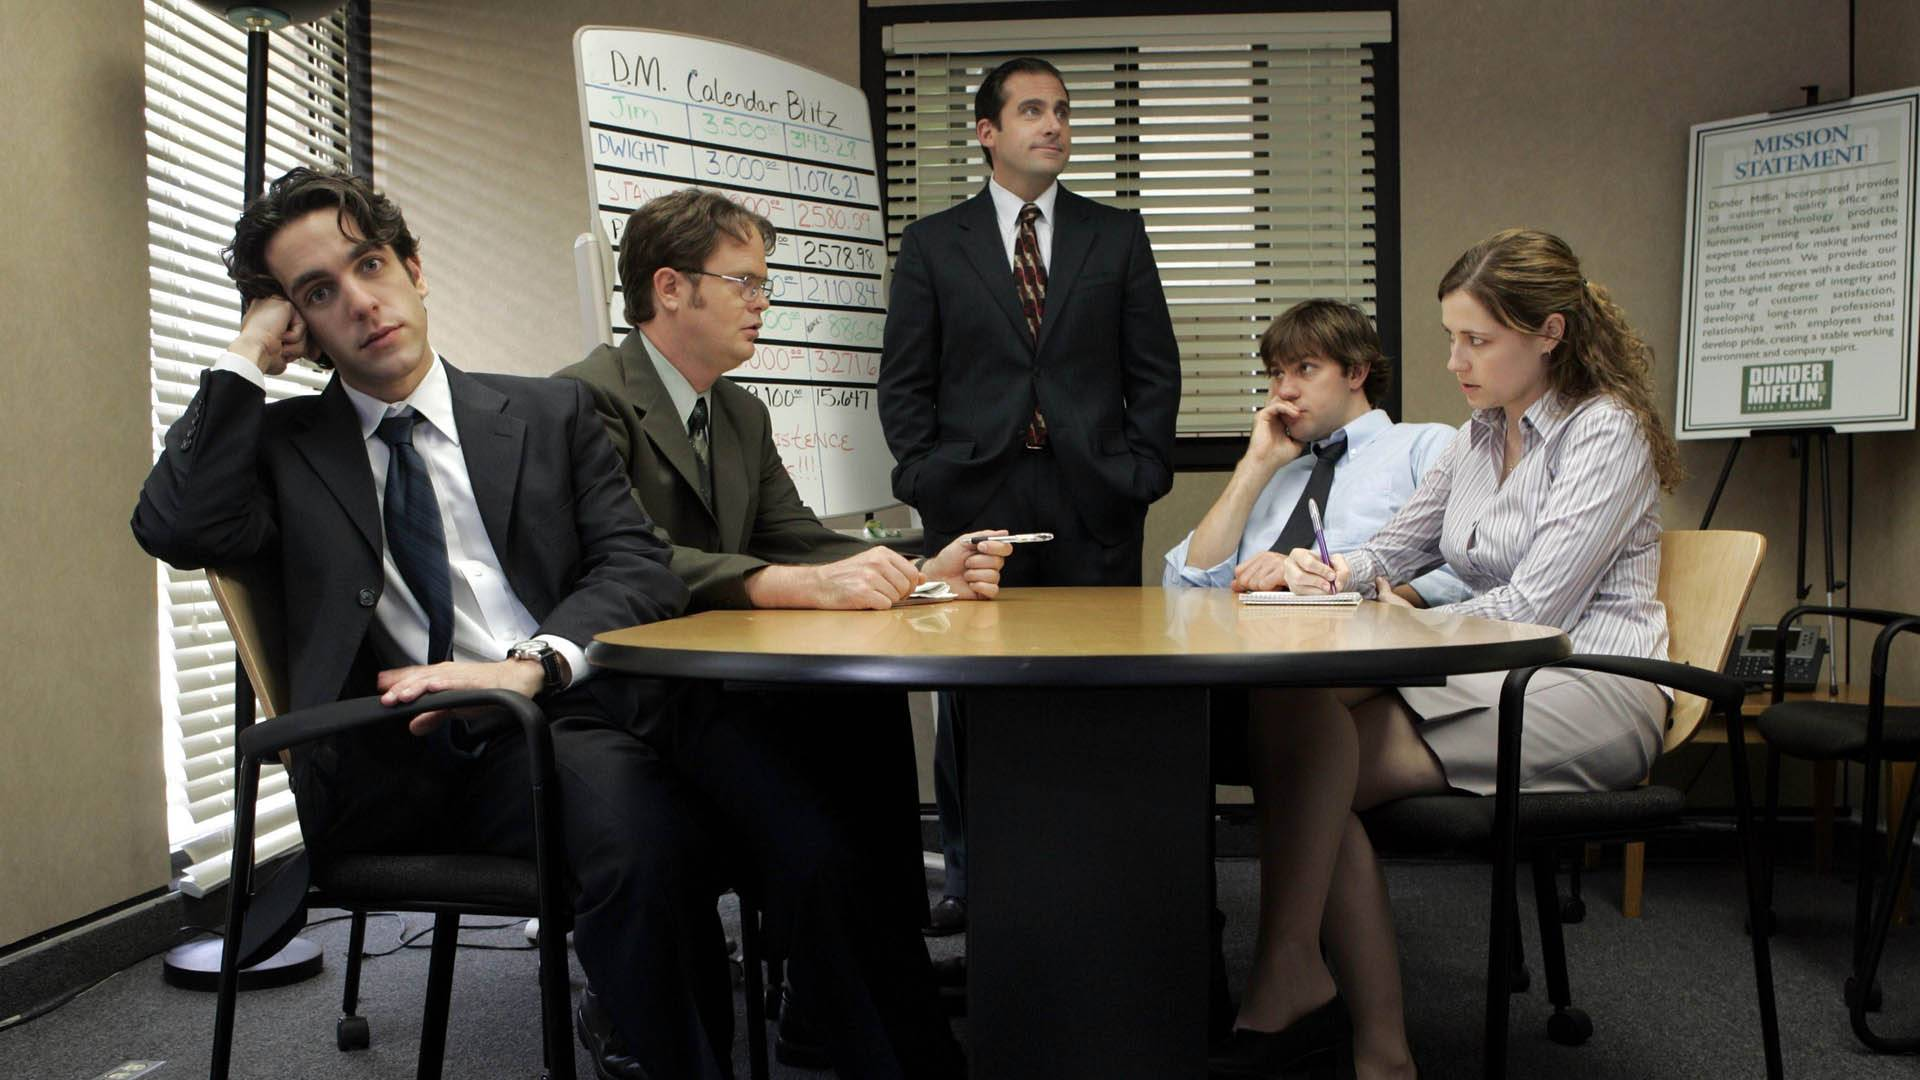 The Office conference room office layout